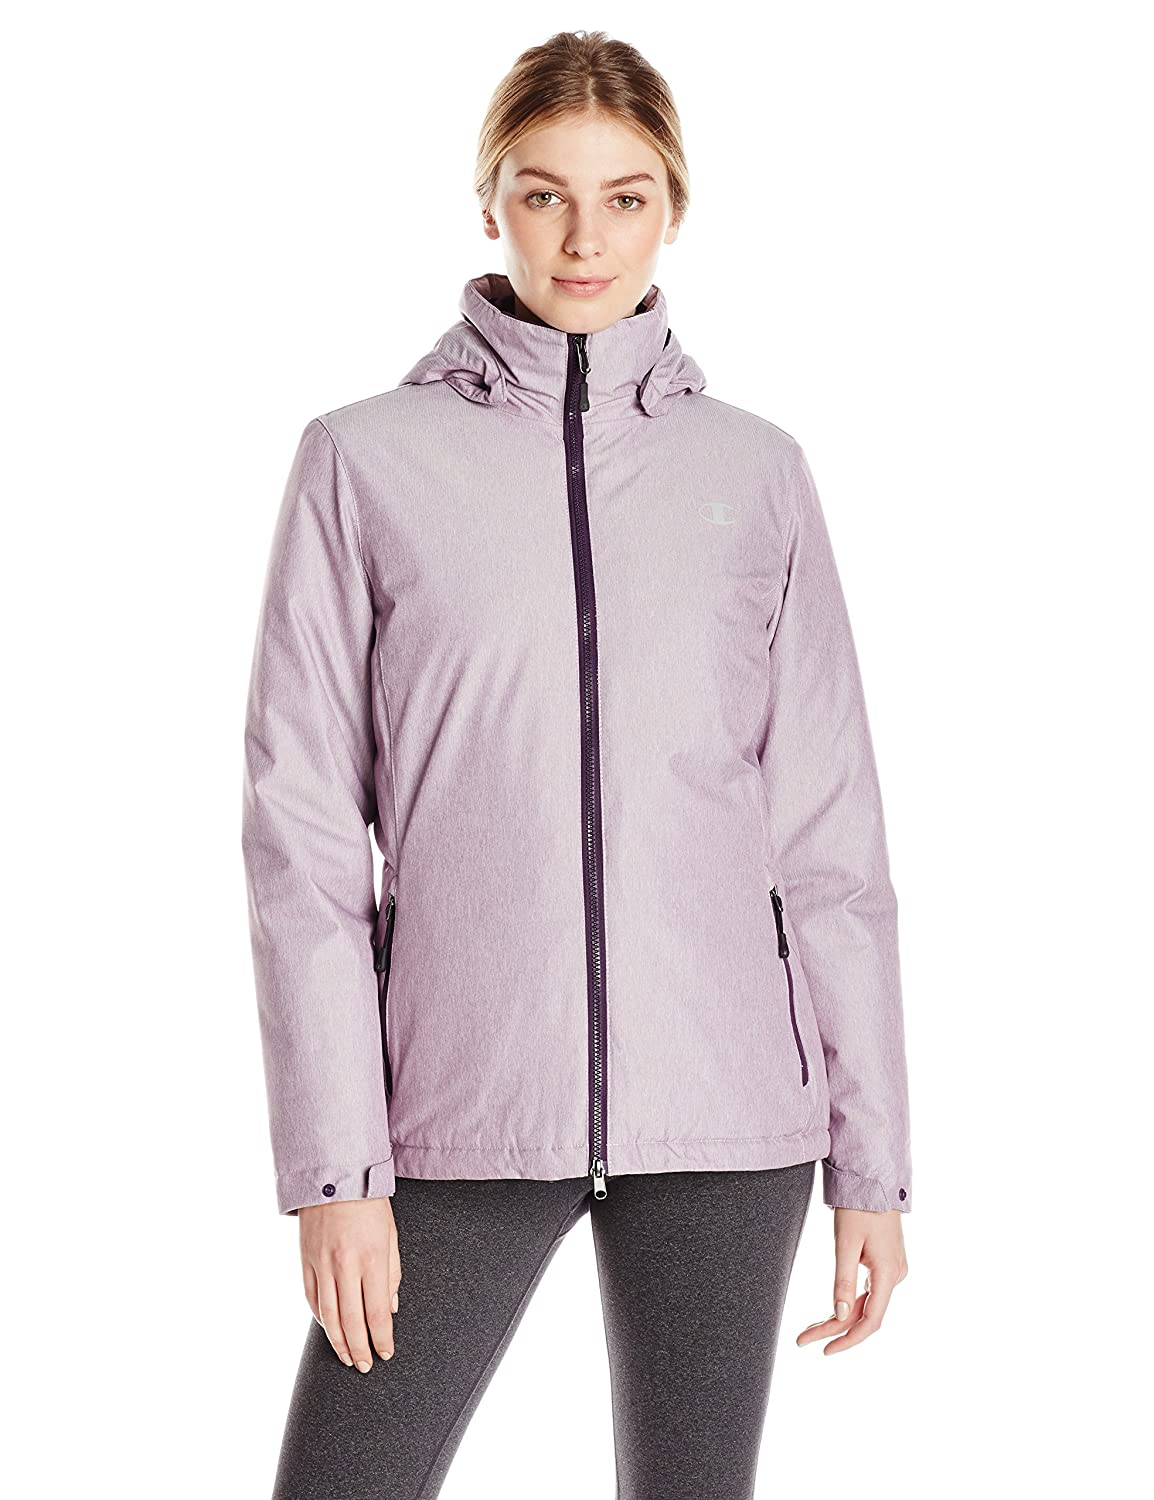 Champion Women's 3-in-1 Jacket with Fleece Inner Shell Champion Womens Outerwear CH3002PS